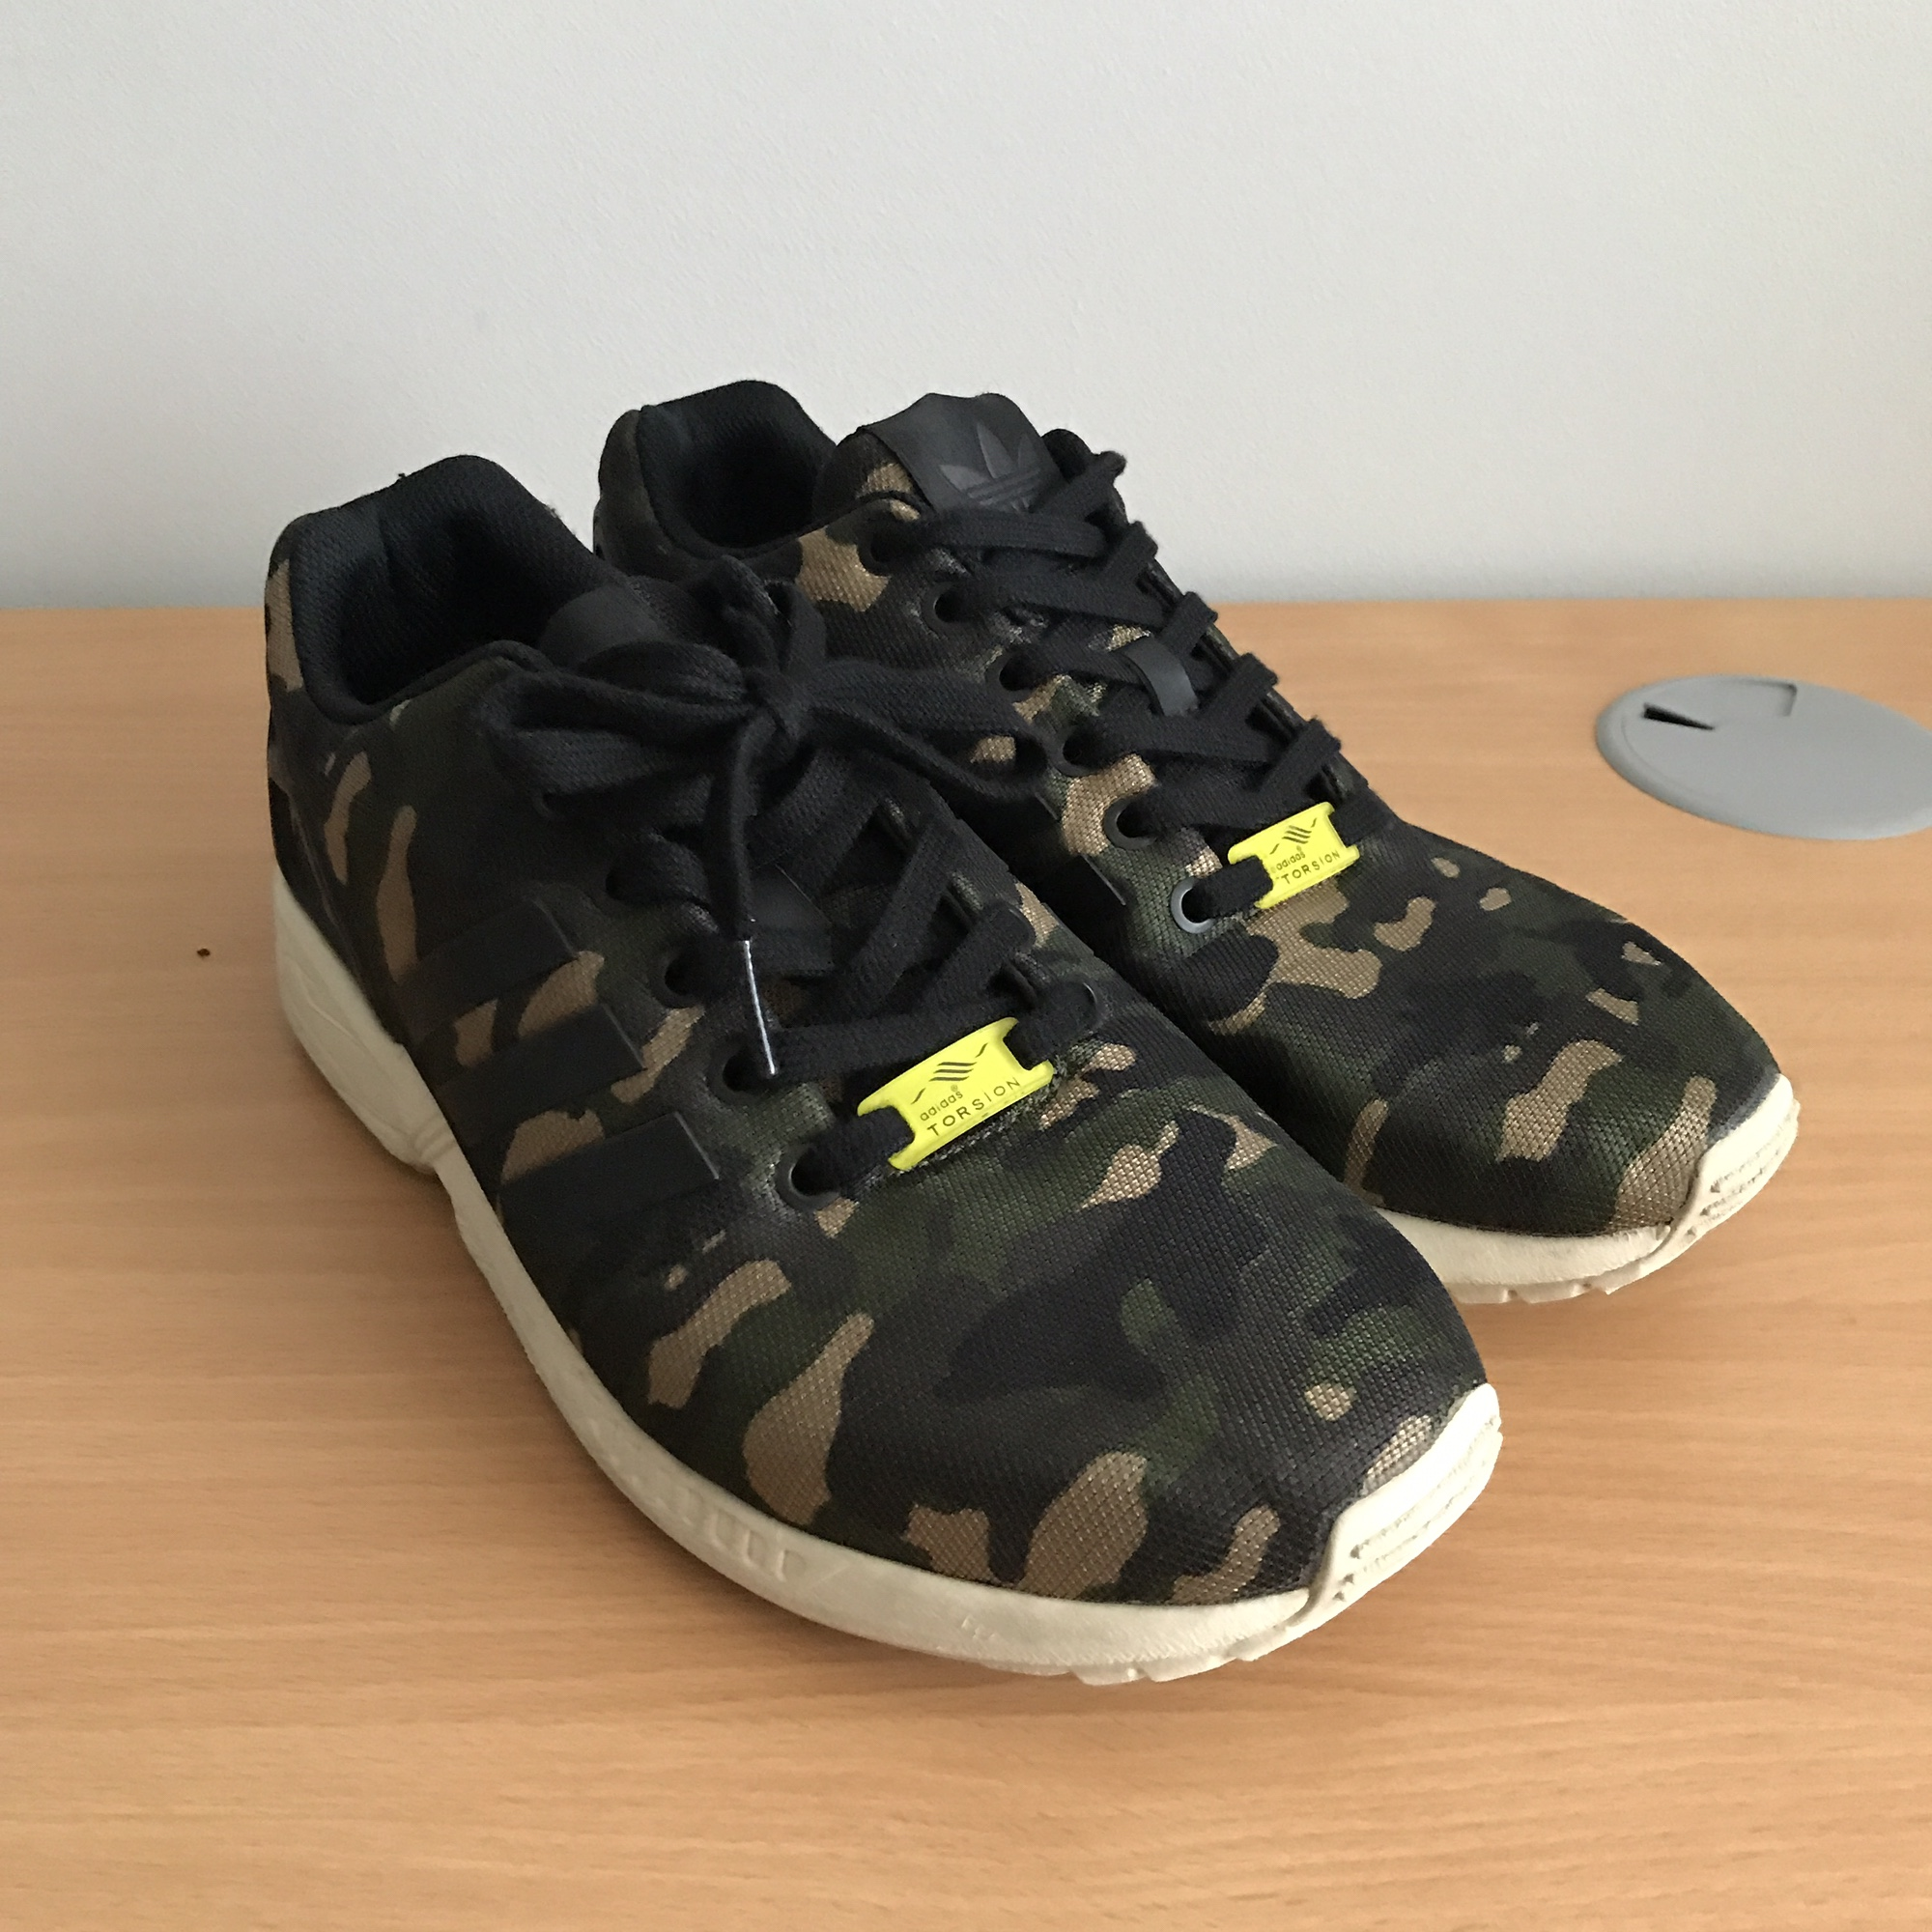 purchase cheap 600f4 1f894 Adidas zx flux camo, generally good condition over... - Depop